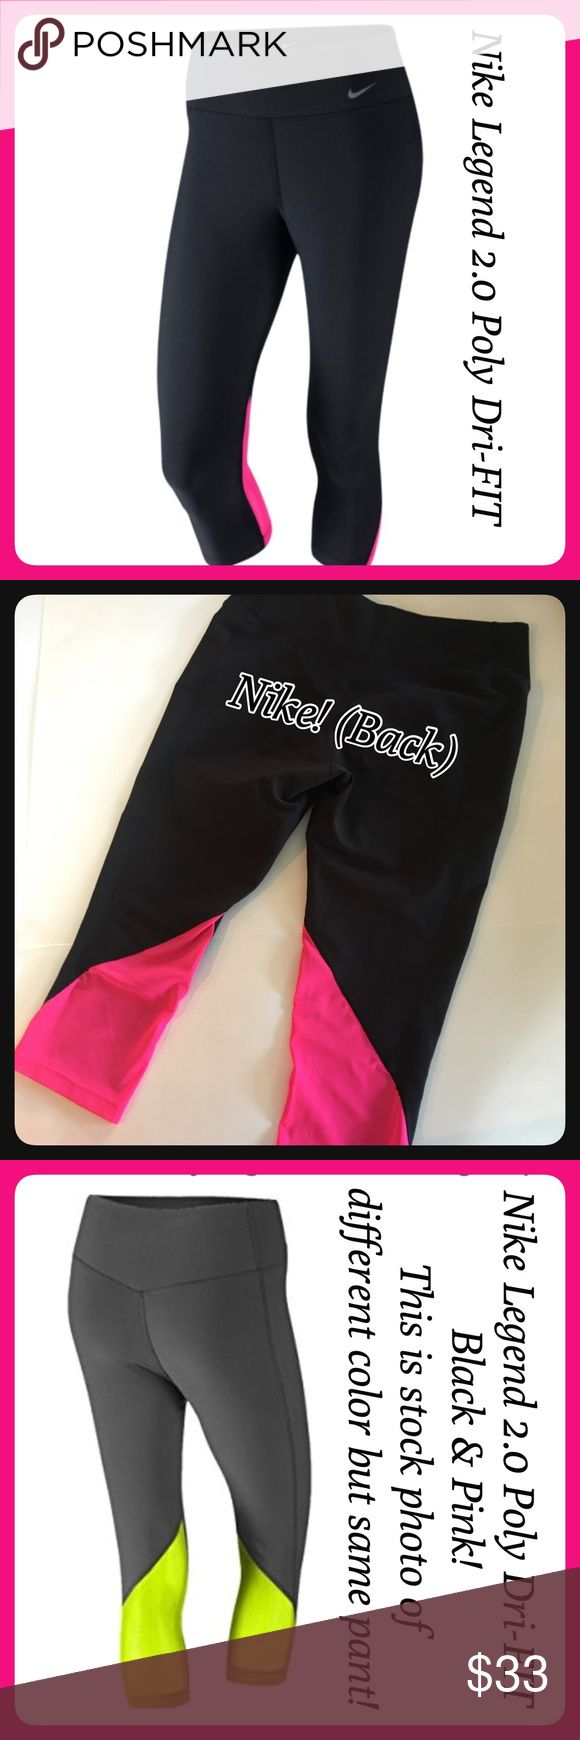 """NWOT Nike Legend 2.0 Poly Tight Fit Capris L NWOT Nike Legend 2.0 Poly Tight Fit Training Capri pants. Dri-FIT. Made with sweat-wicking stretch fabric that hugs your body from hips to hem for a flattering & comfortable fit! Black with hot pink mesh accents on the back of the legs. My measurements are: waist 15"""" unstretched laying flat, inseam approx. 19"""". Tapered leg. 88% Recycled Polyester 12% Spandex. Nike TEN less plastic bottles, ONE Legend Pant! Nike Pants Capris"""